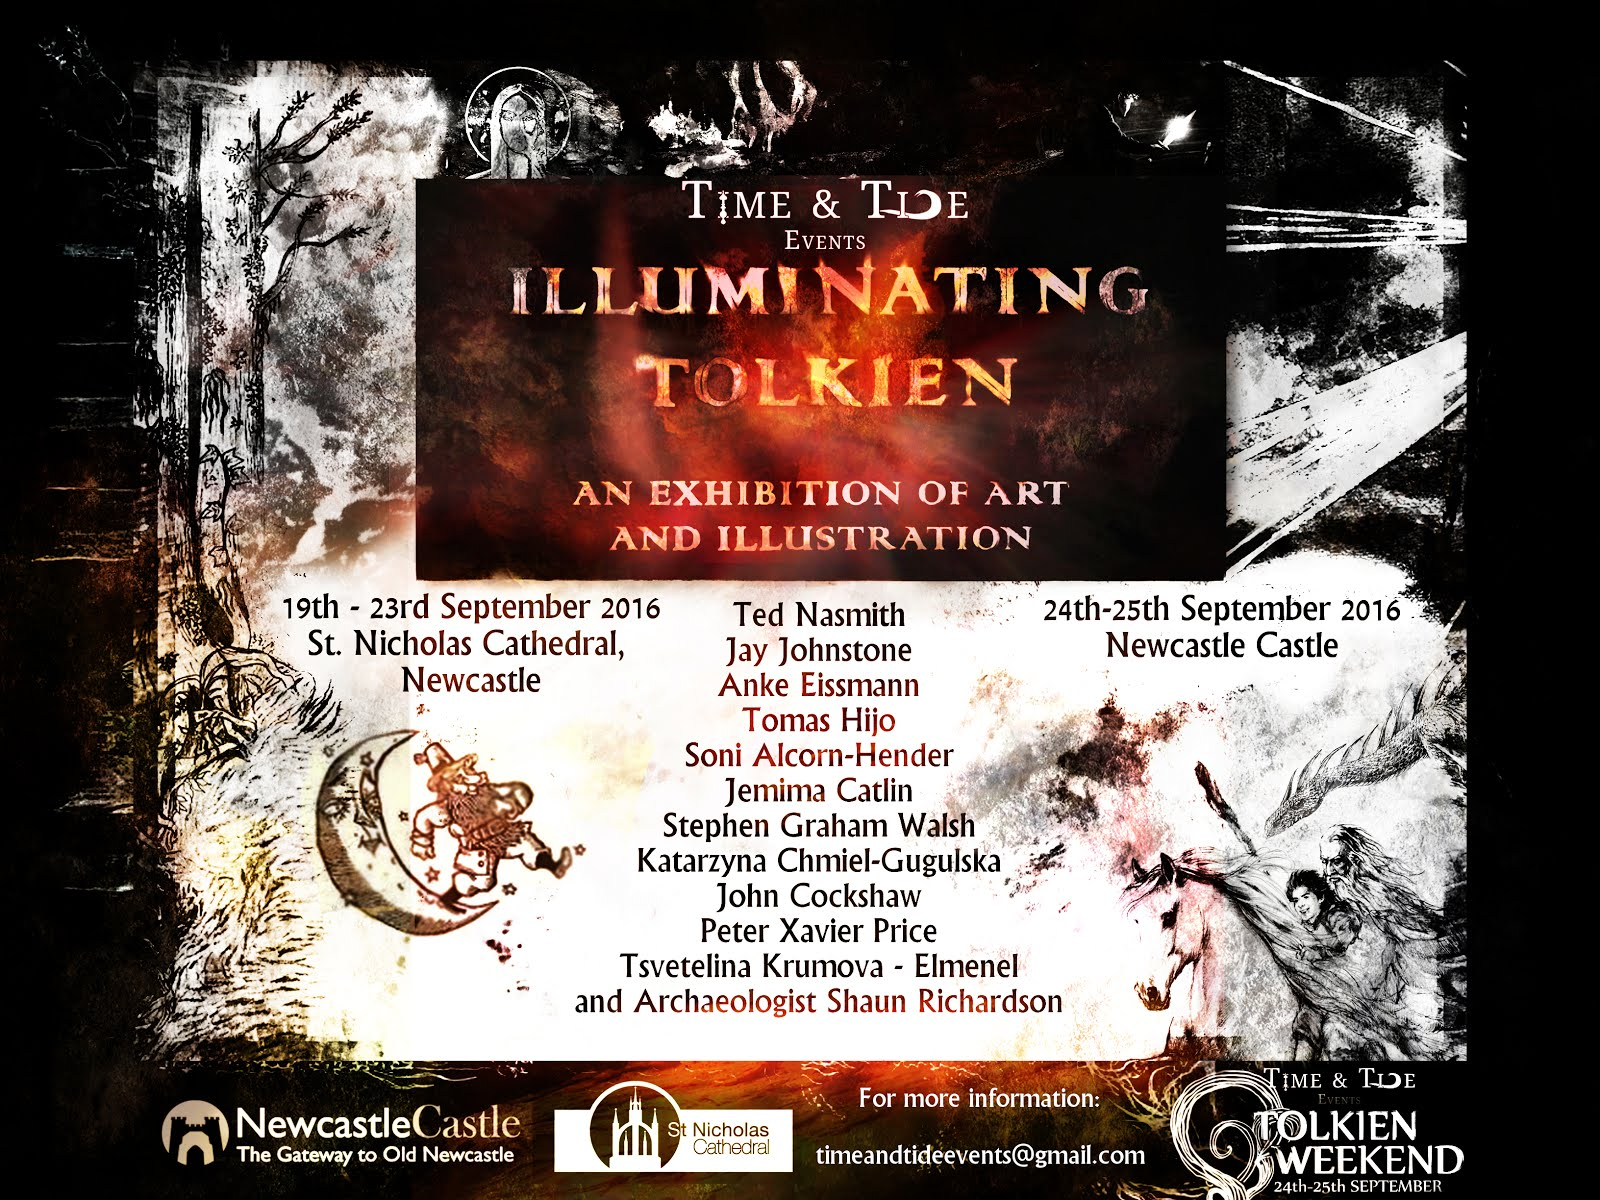 Illuminating Tolkien: an exhibition of Art and illustration